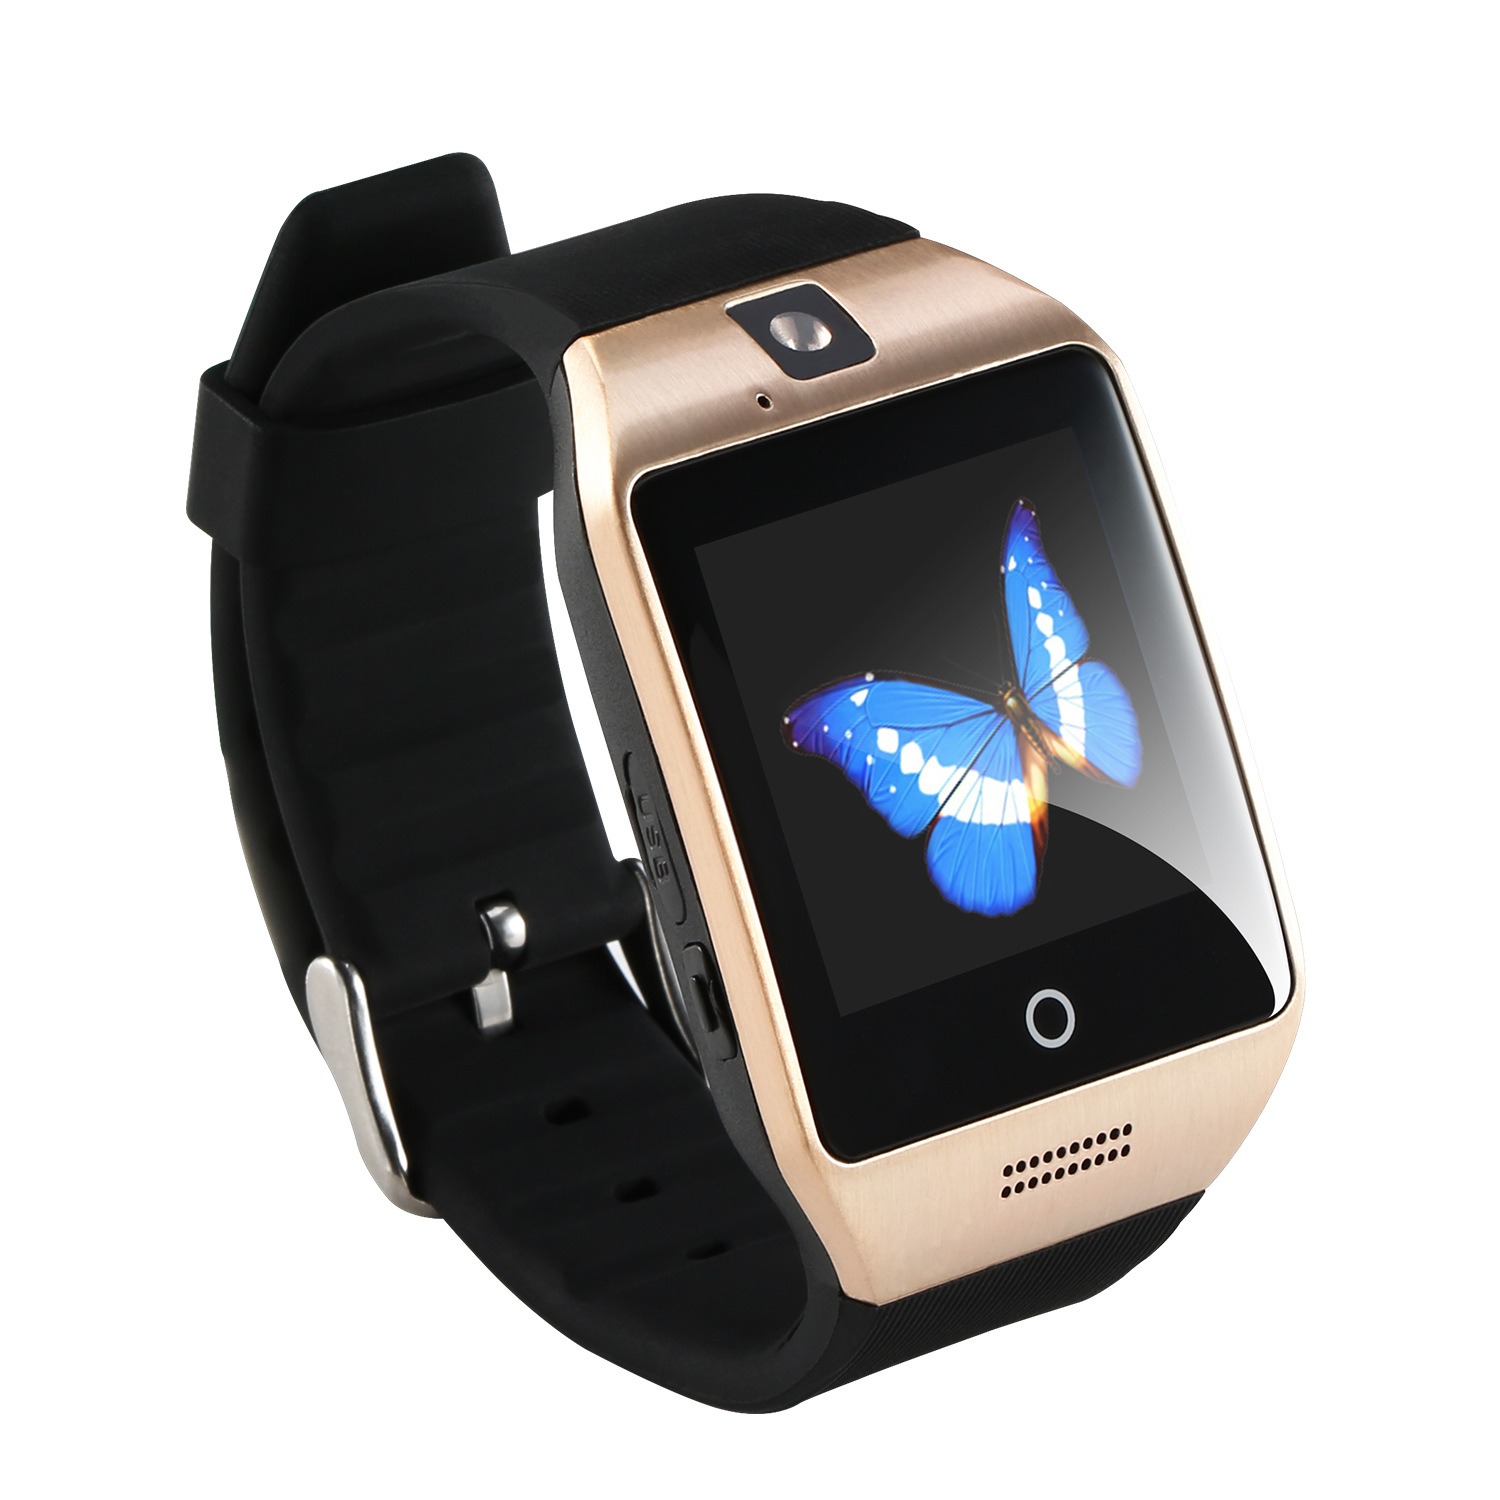 phone smart watches black hybrid oaxis kid mobile watchphone